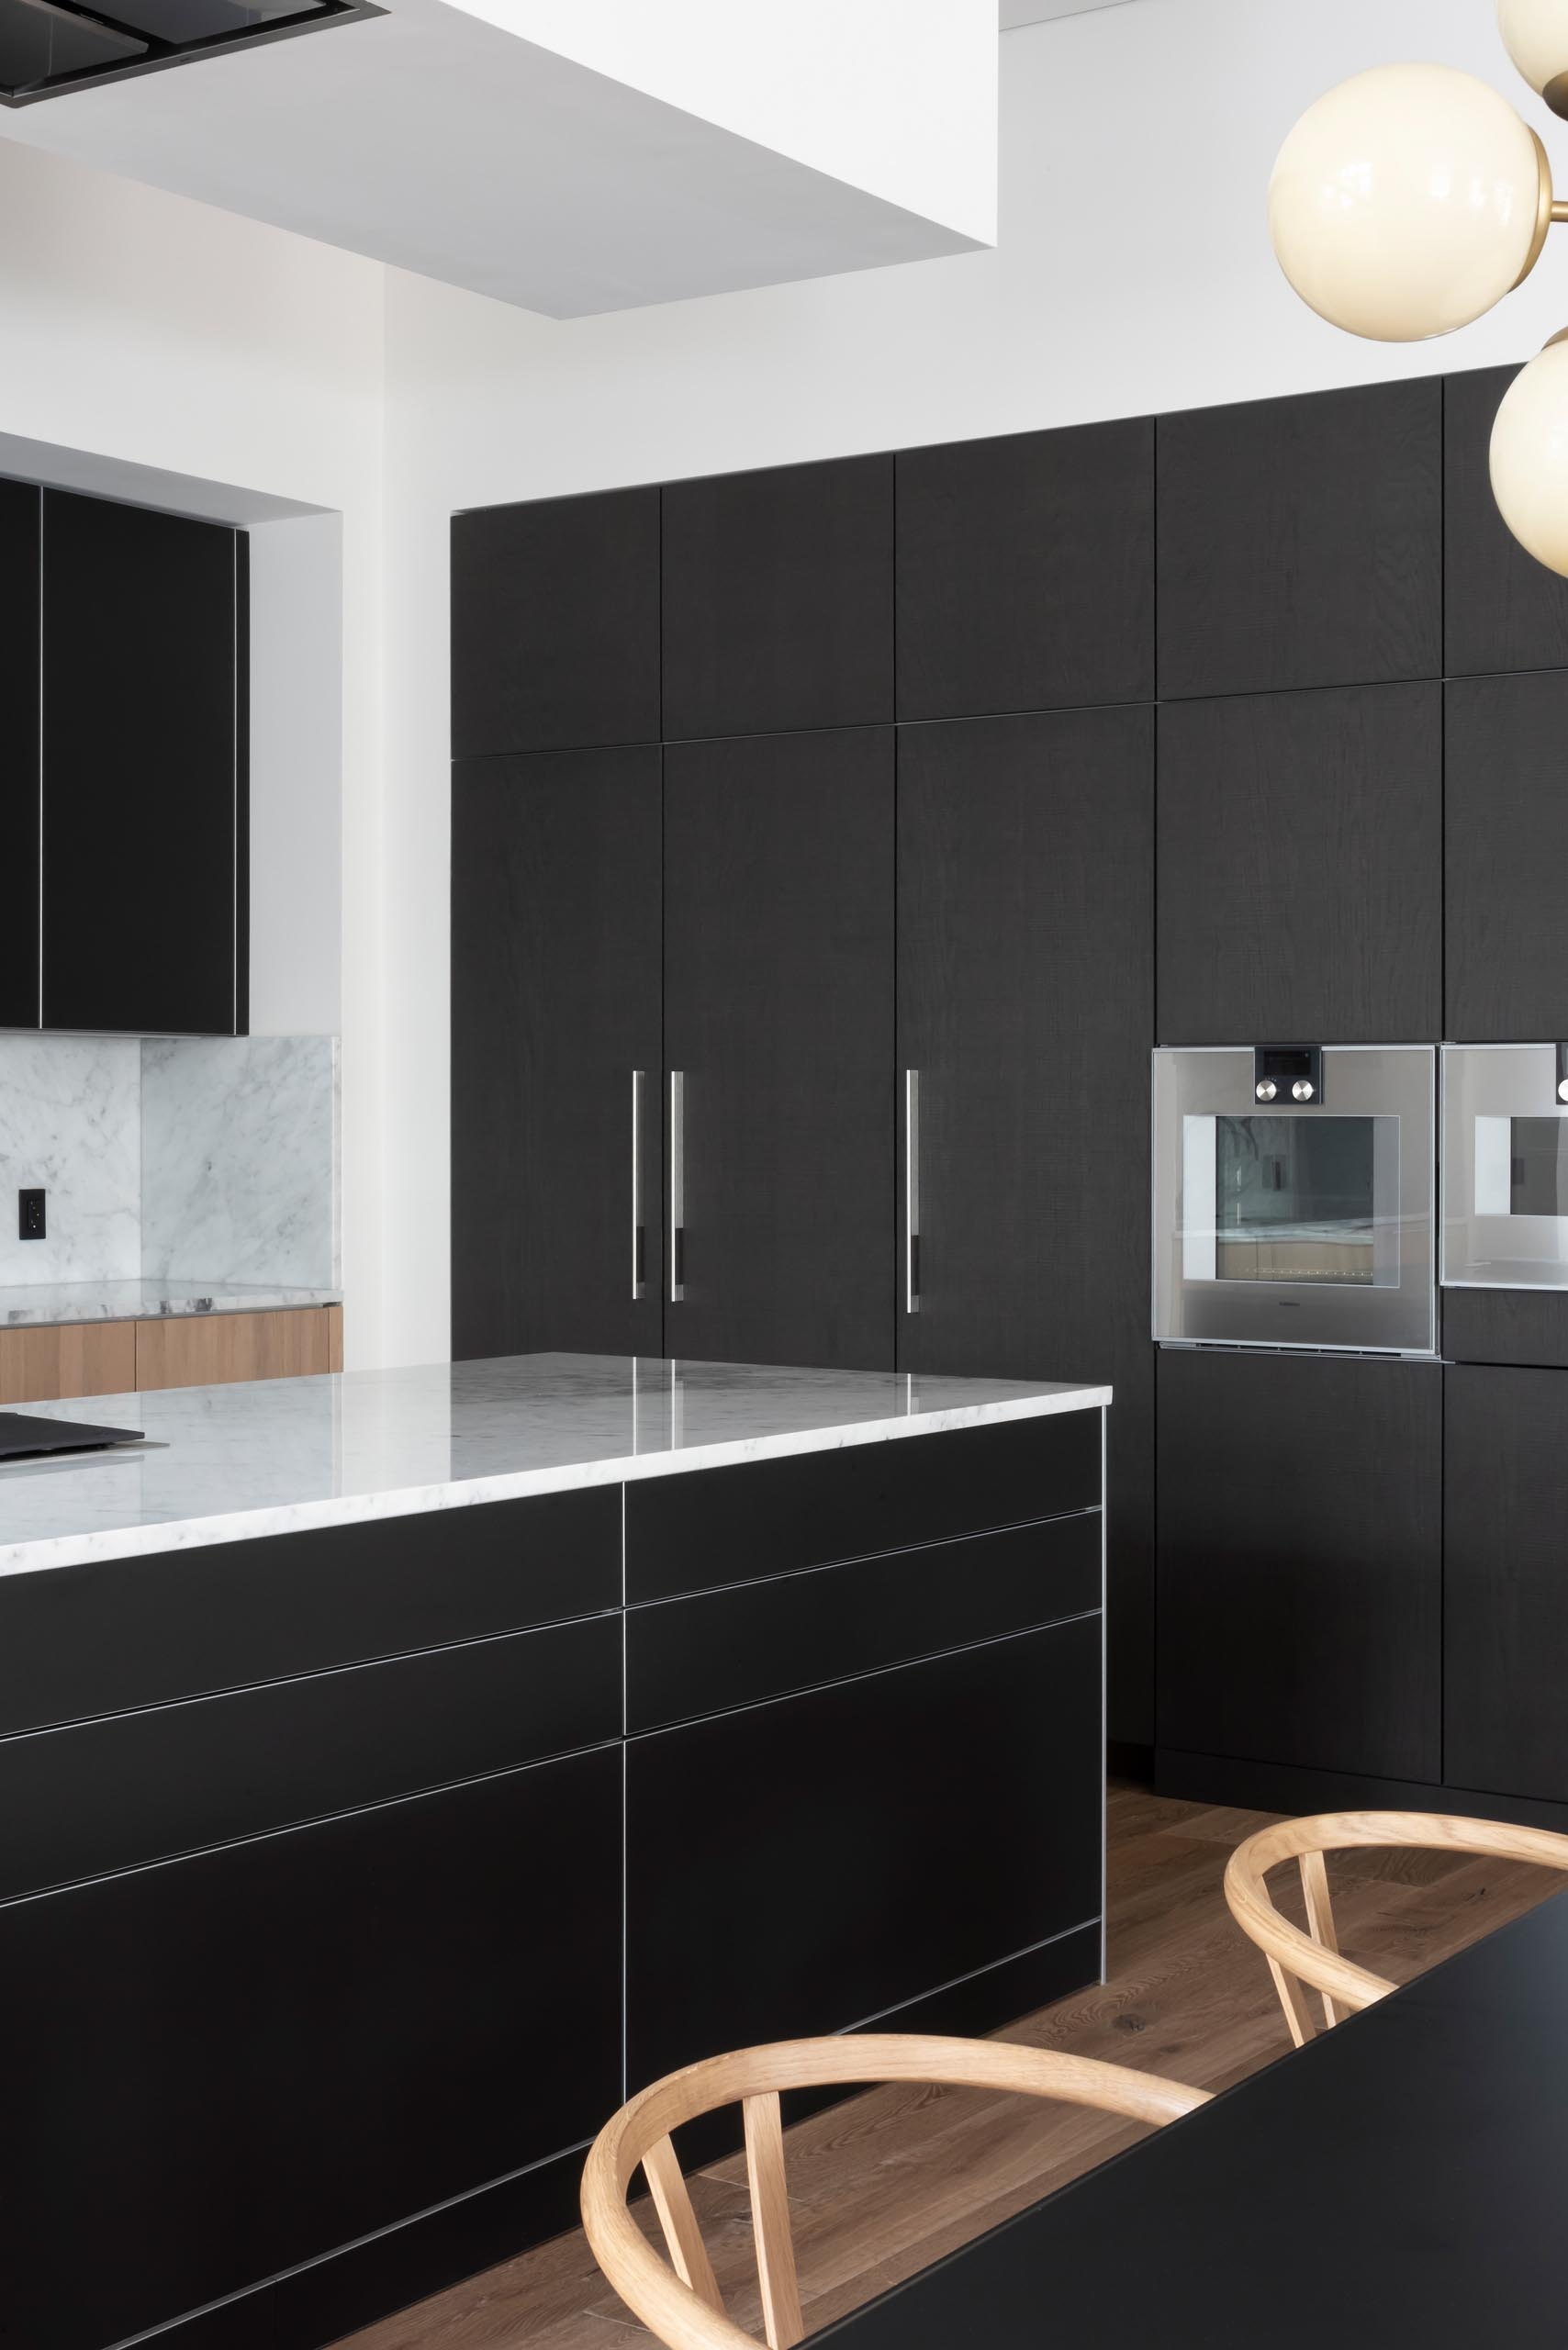 In this modern kitchen, matte black cabinets are complemented by gray marble countertops and backsplash.